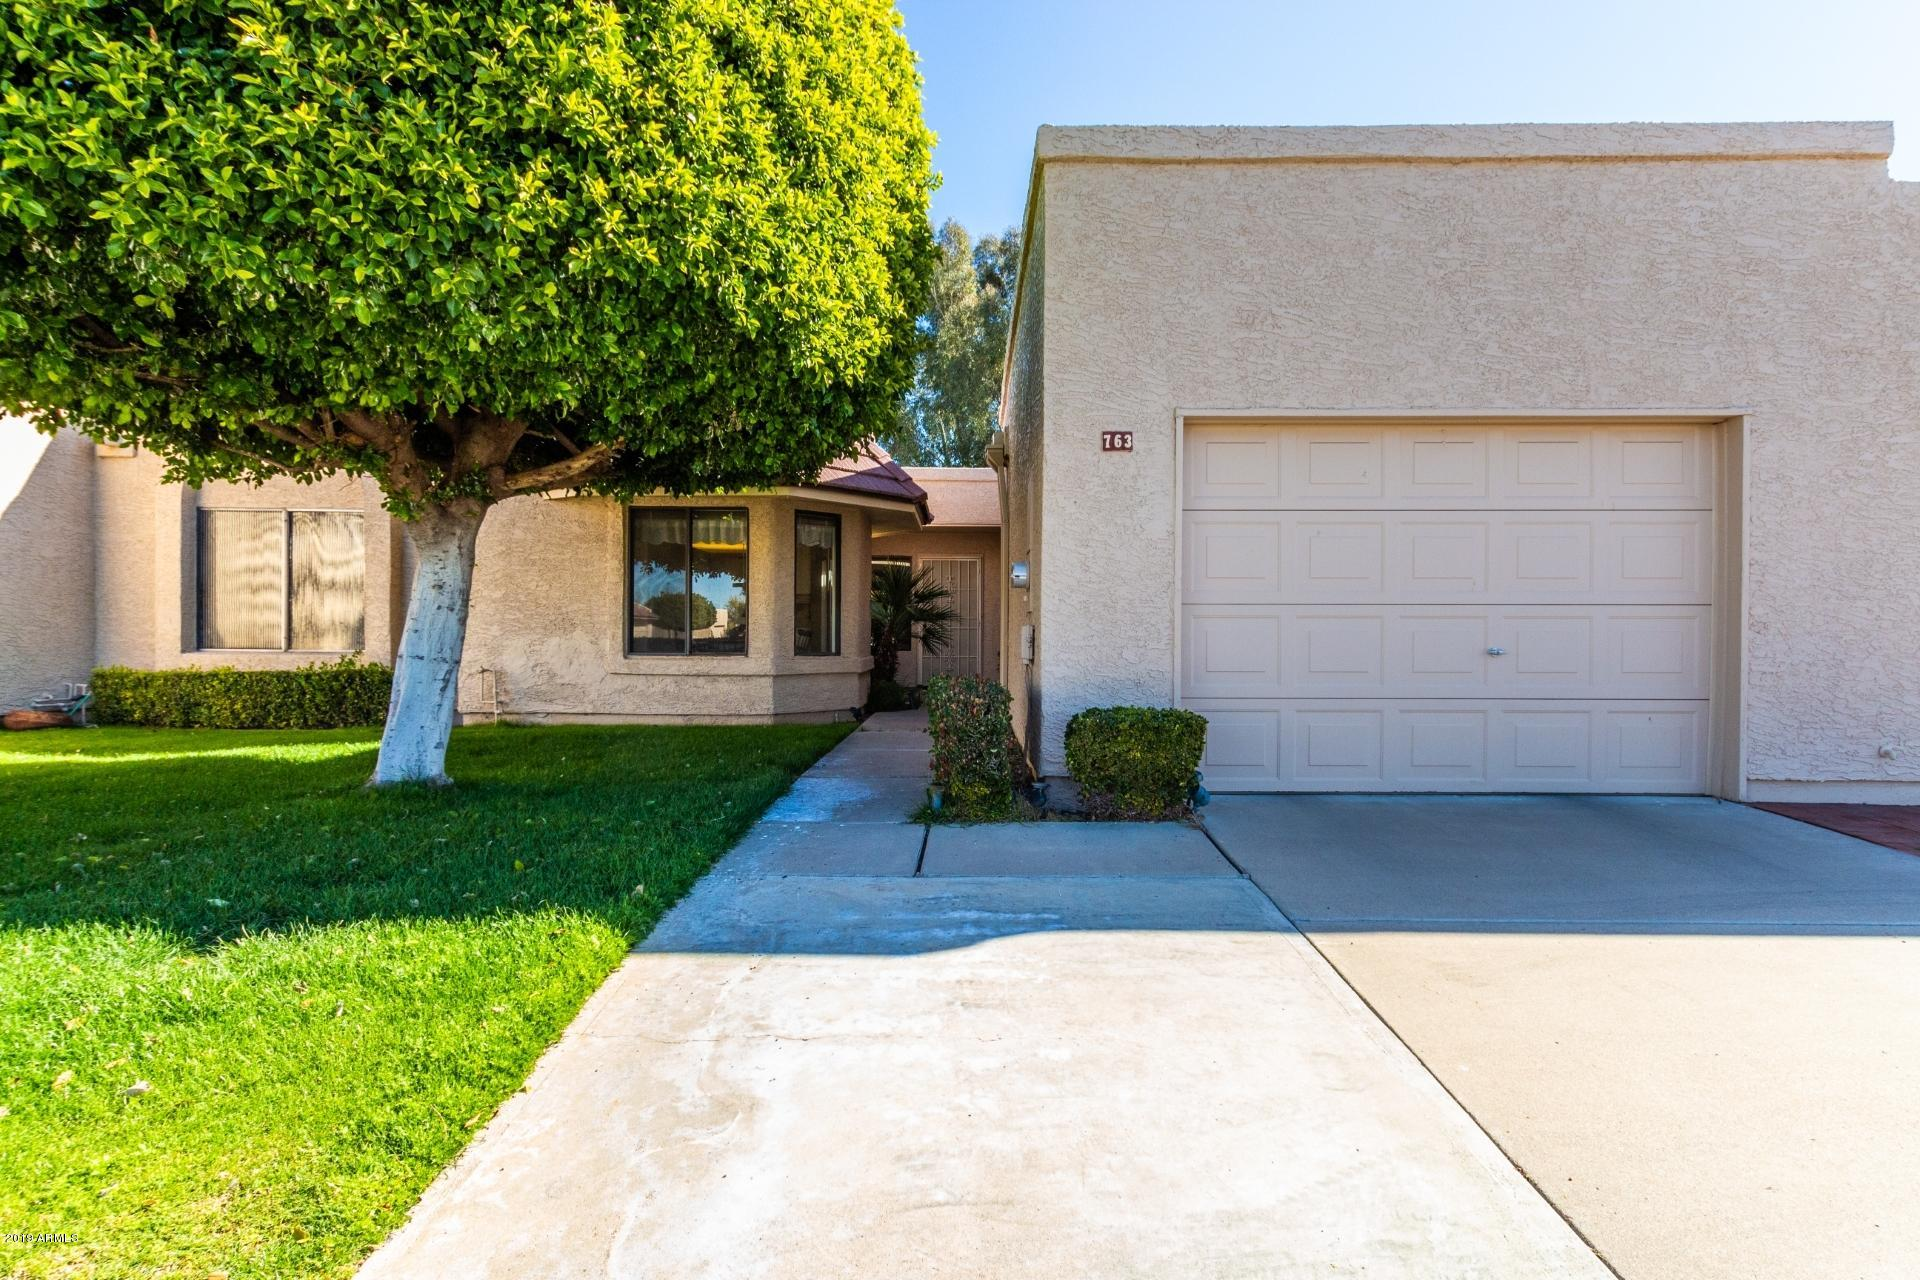 Photo of 763 S ARROWWOOD Way, Mesa, AZ 85208